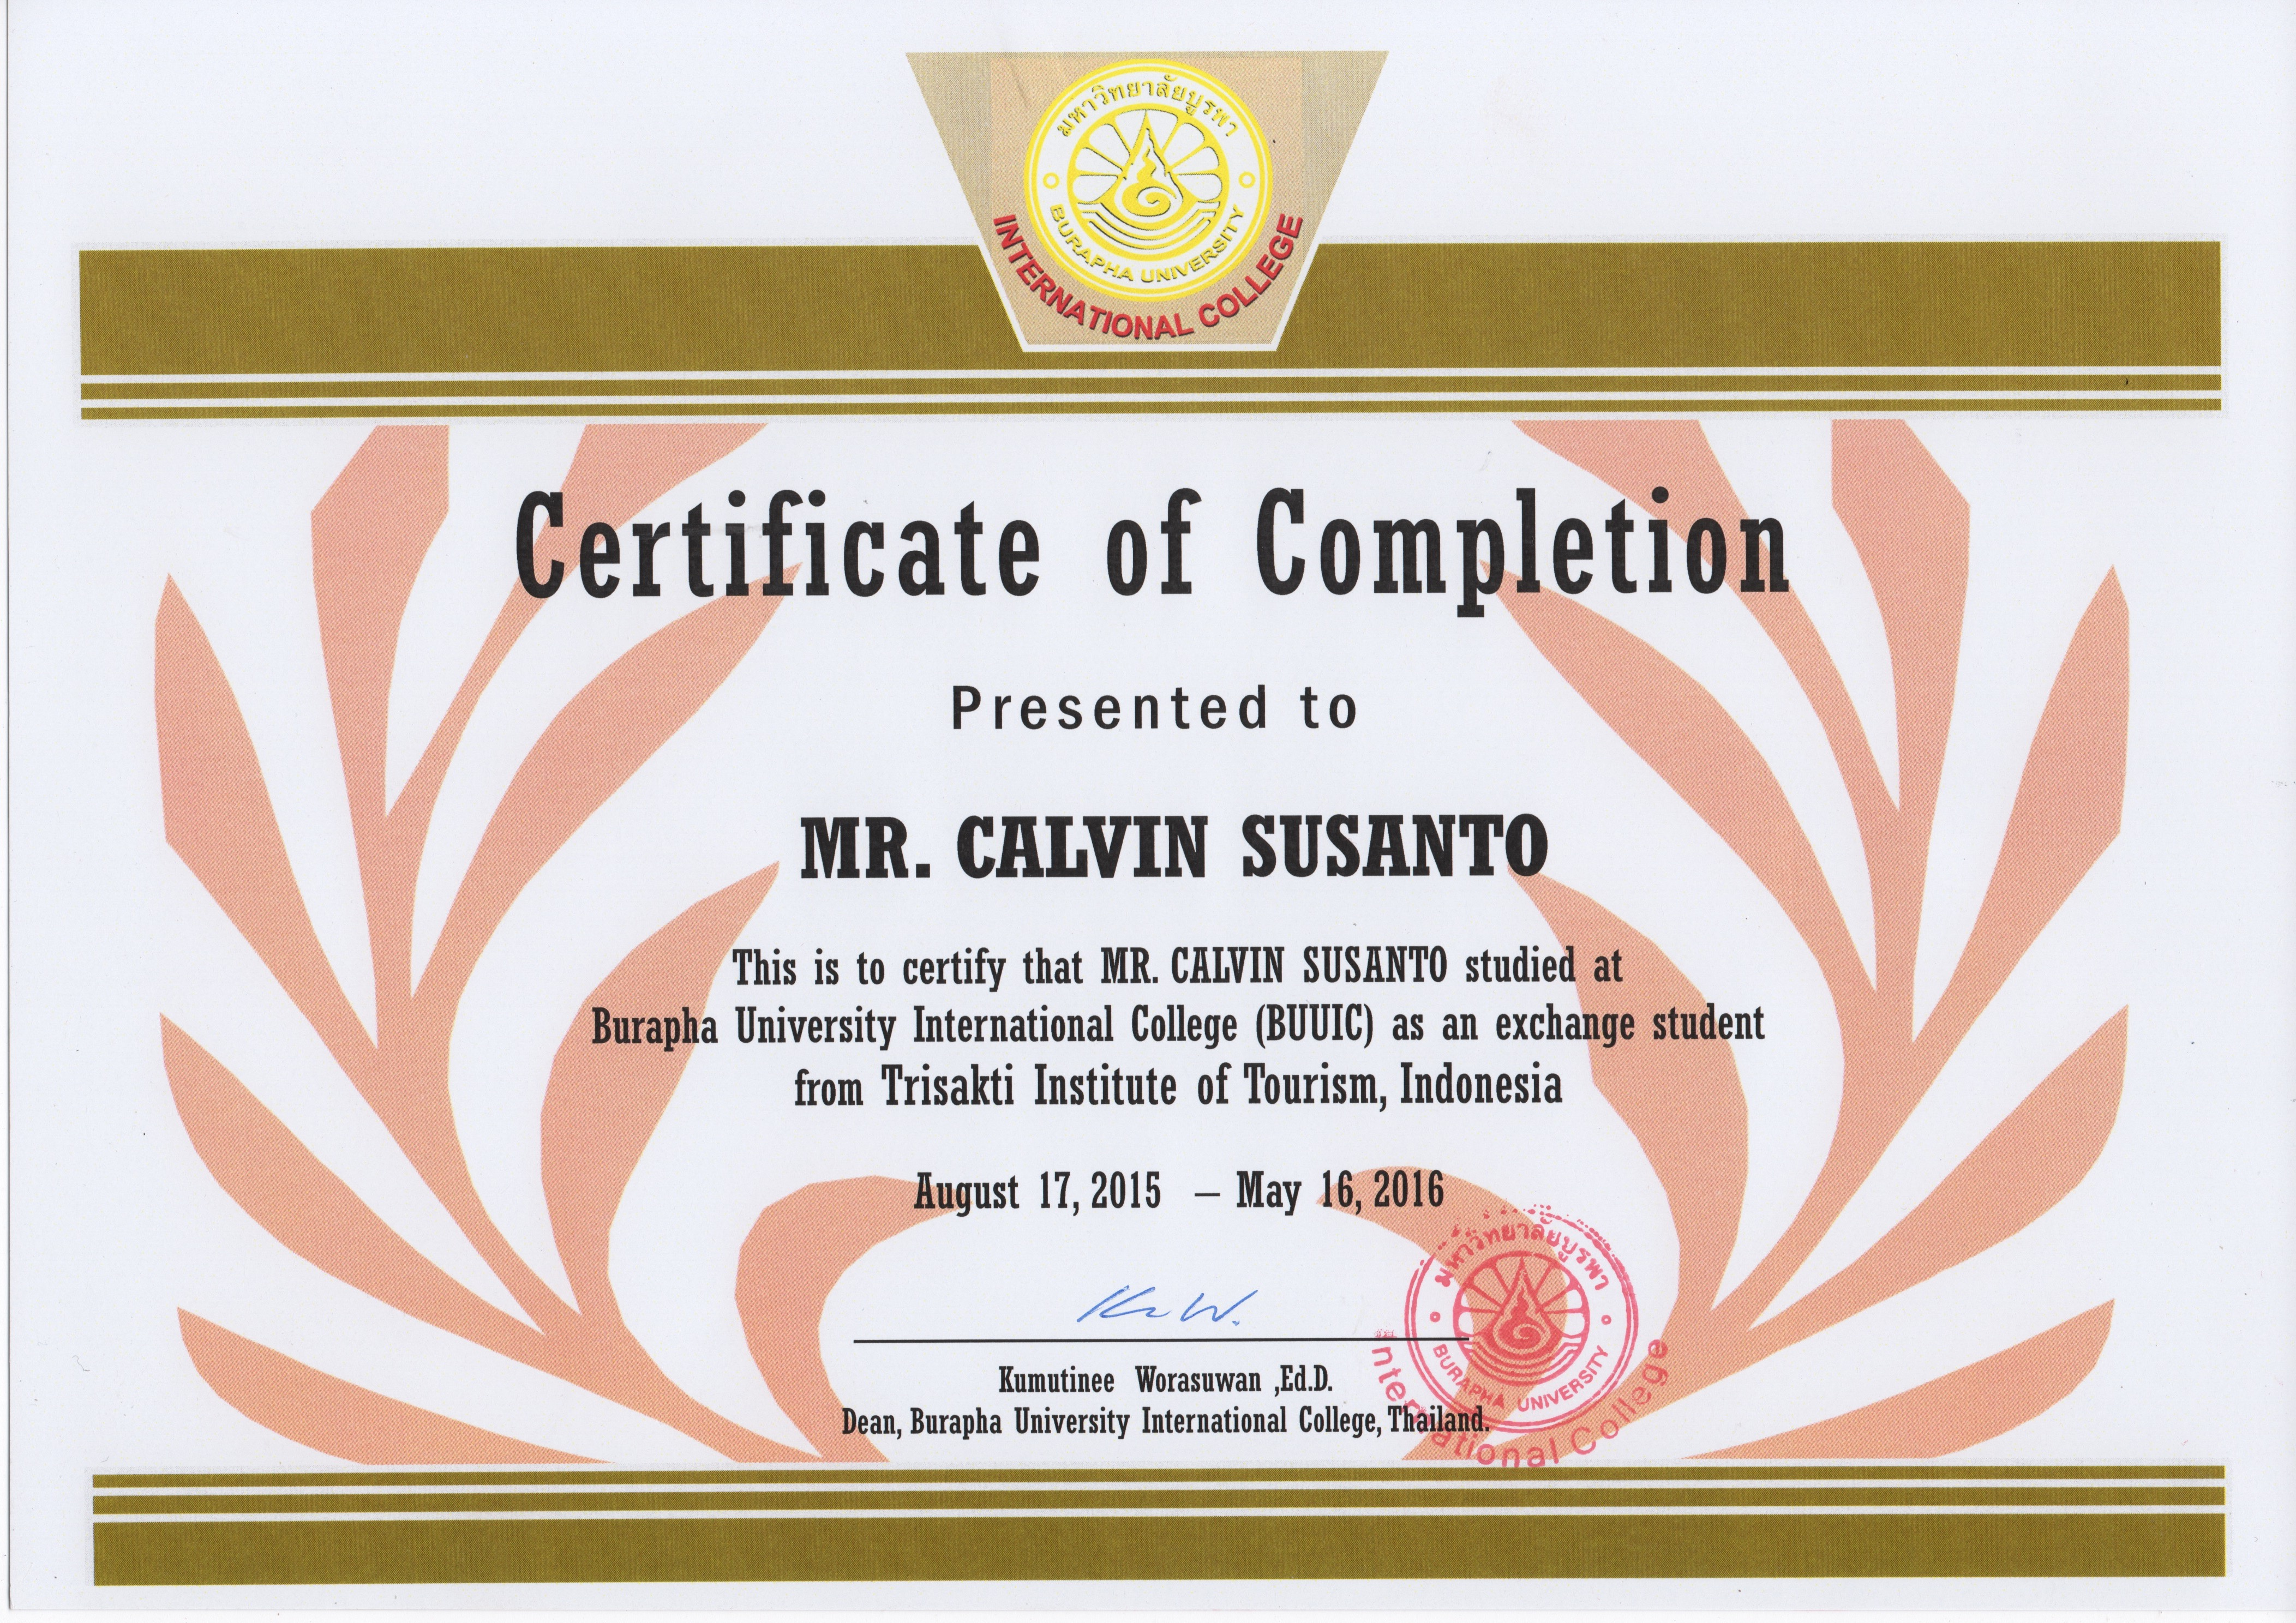 Certificate of Completion BUUIC.jpeg